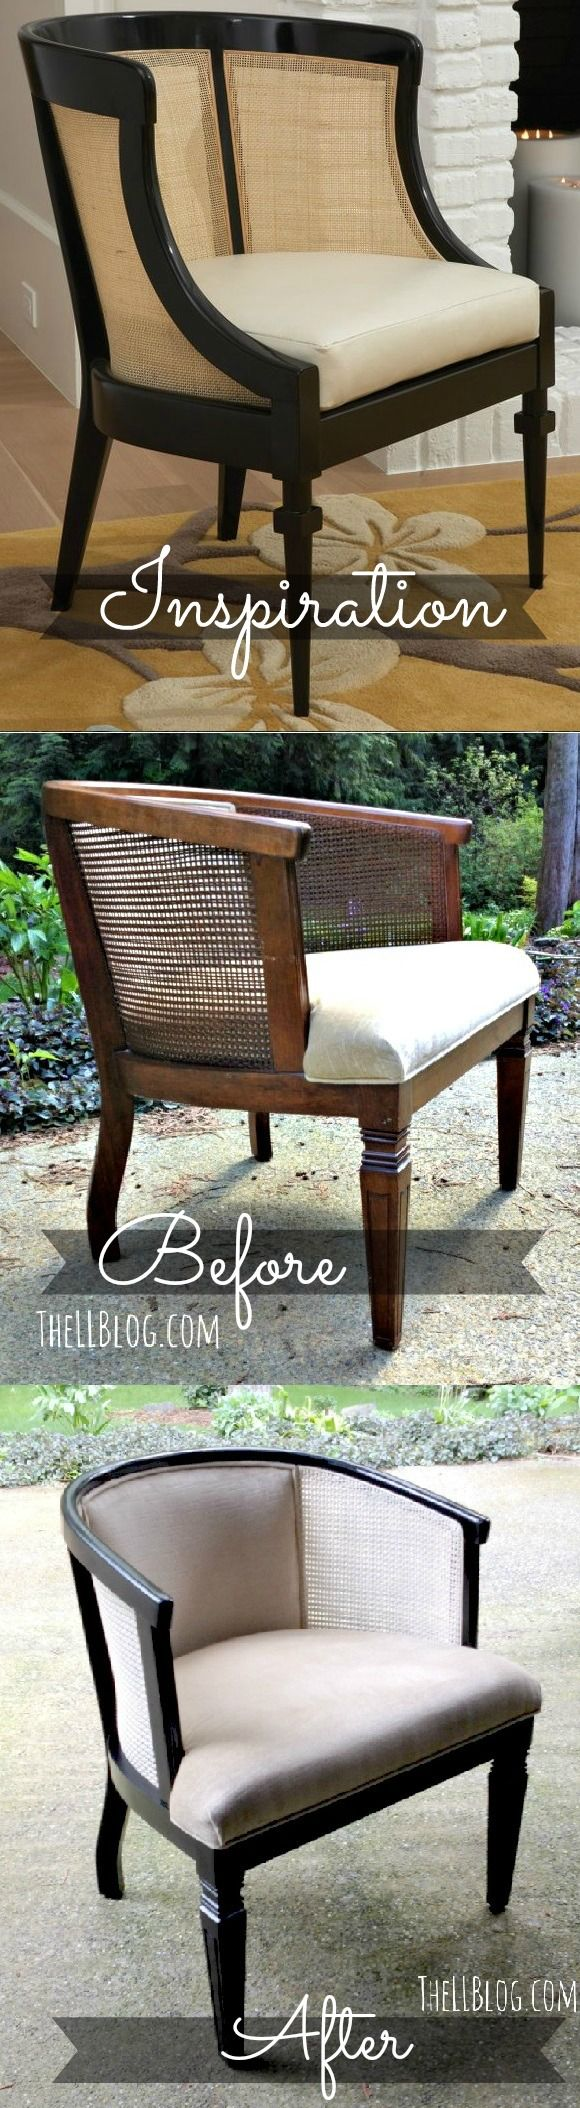 Bentwood rocking chair makeover - Easy Chair Makeover Last Legs Blog